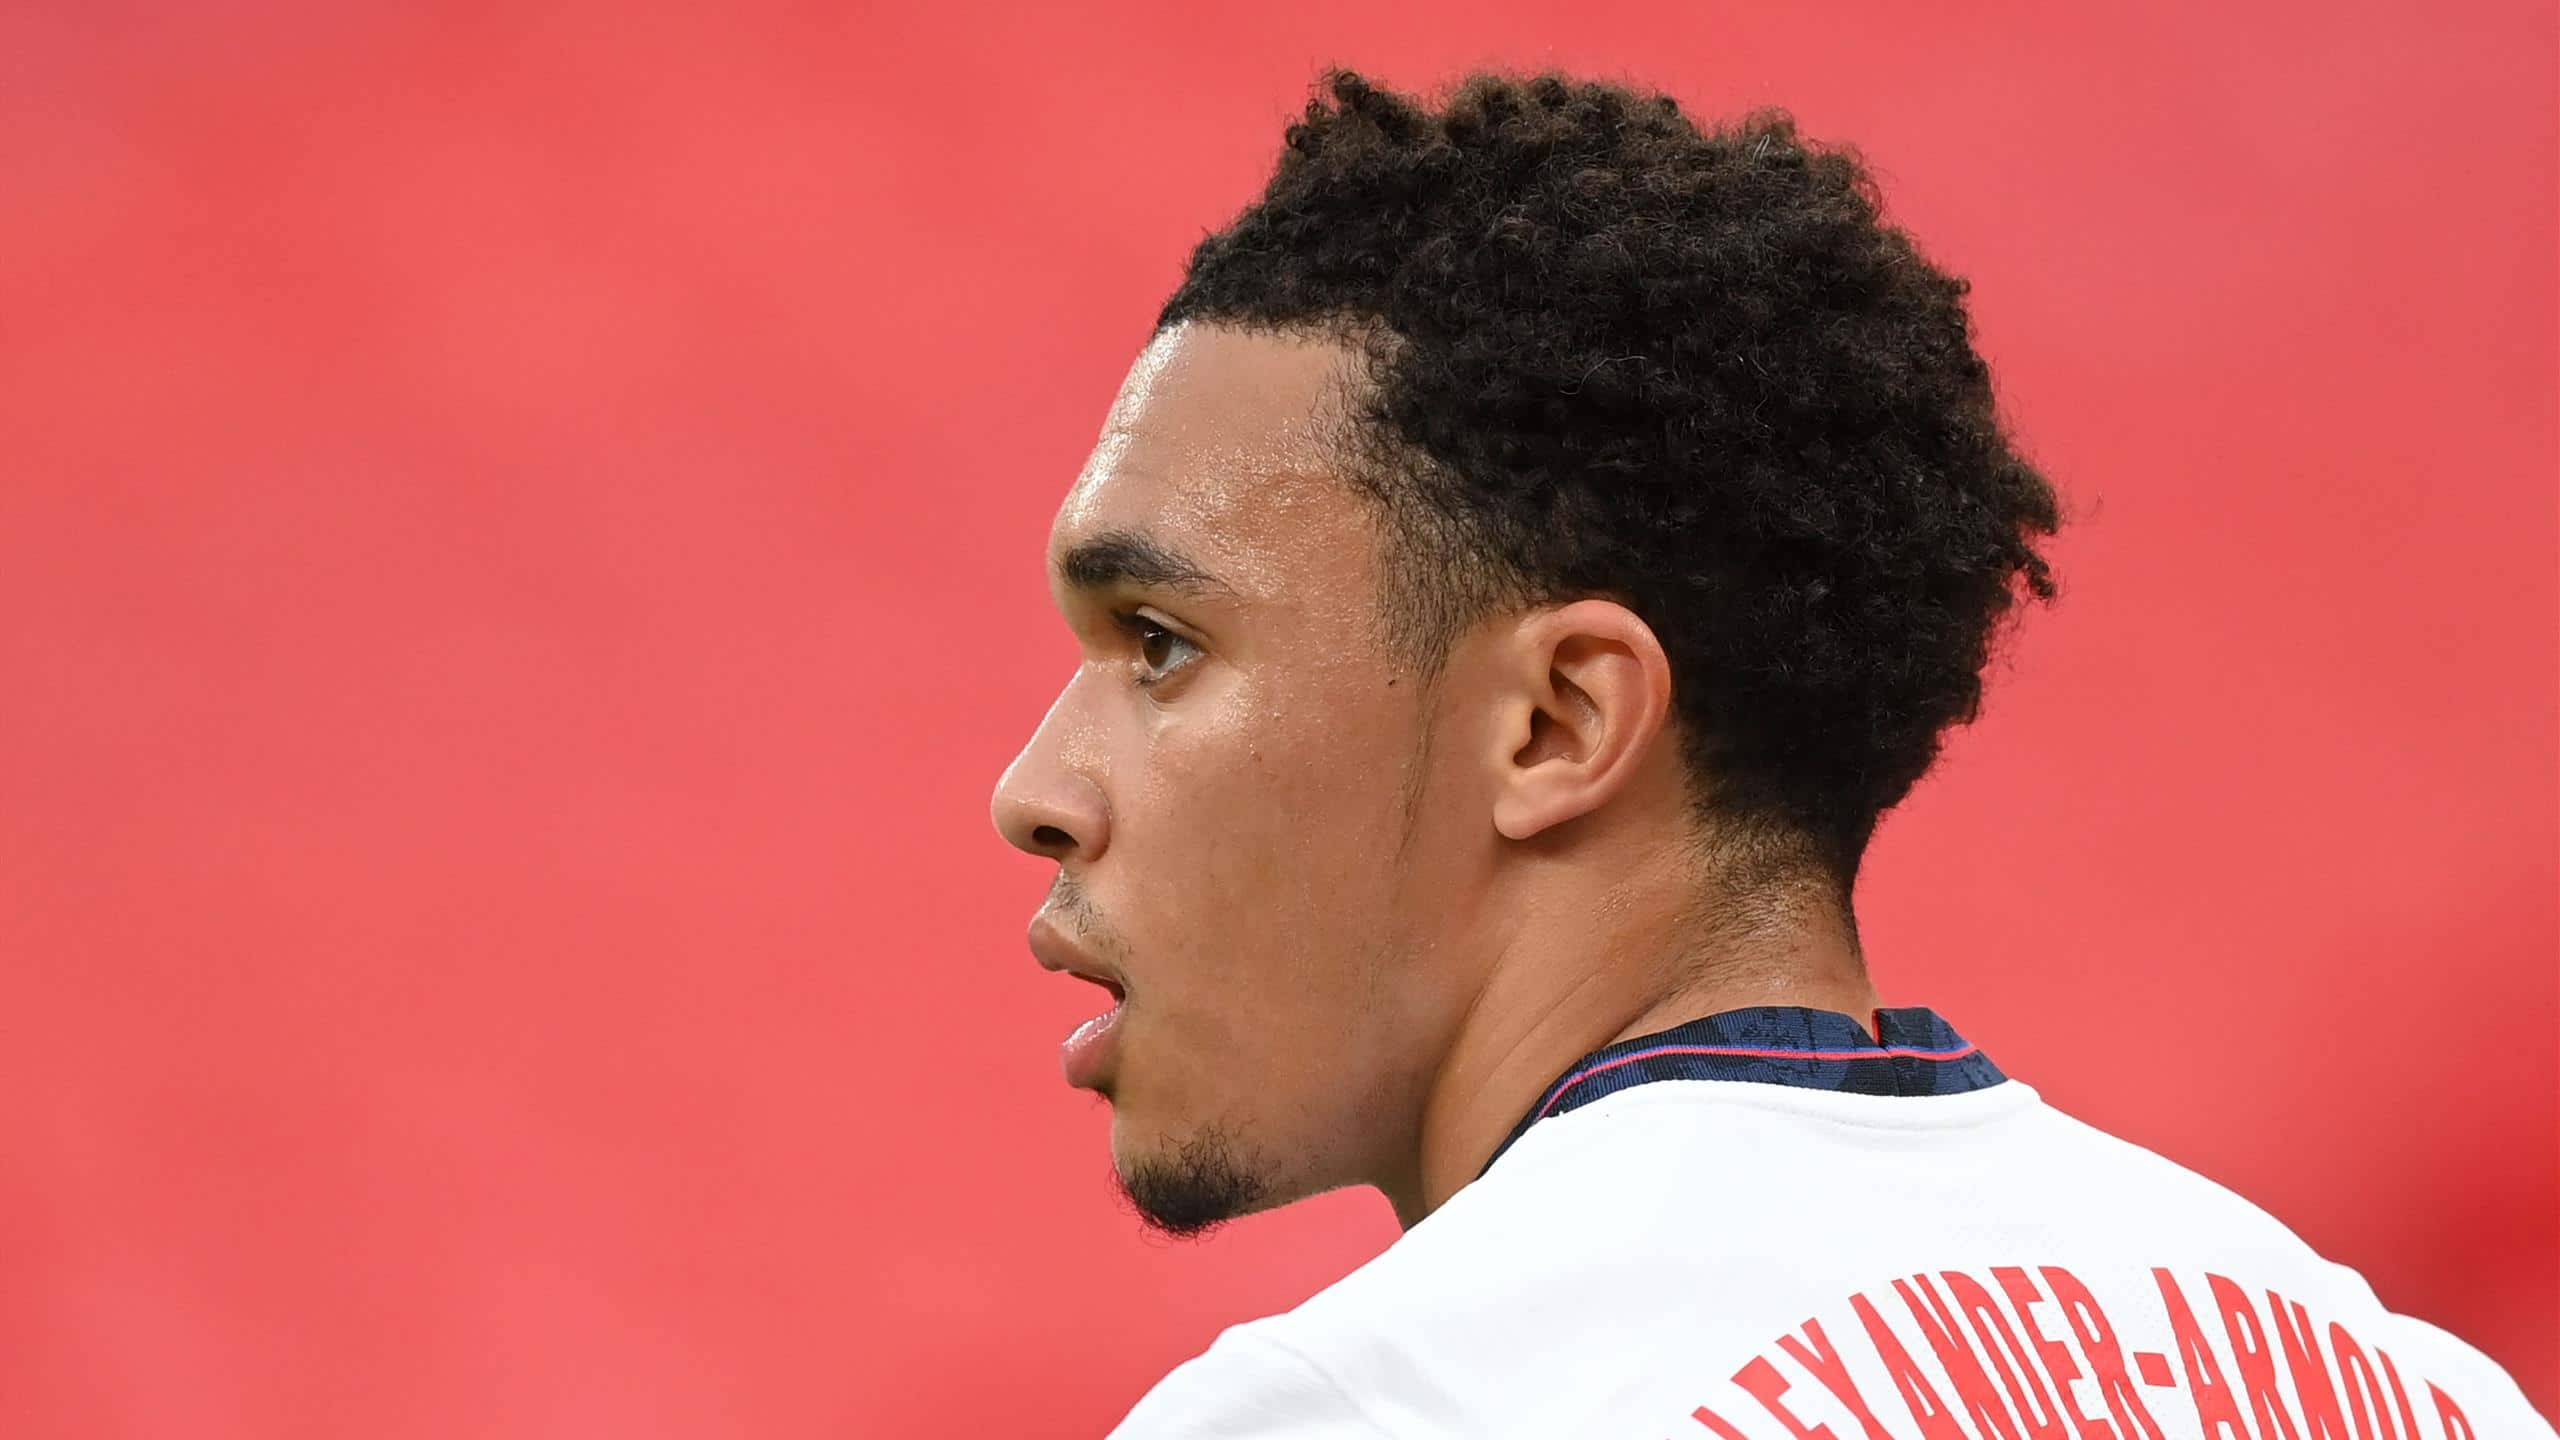 southgate-to-title-30-man-euro-2020-squad-on-tuesday-alexander-arnold-build-to-be-integrated.jpg